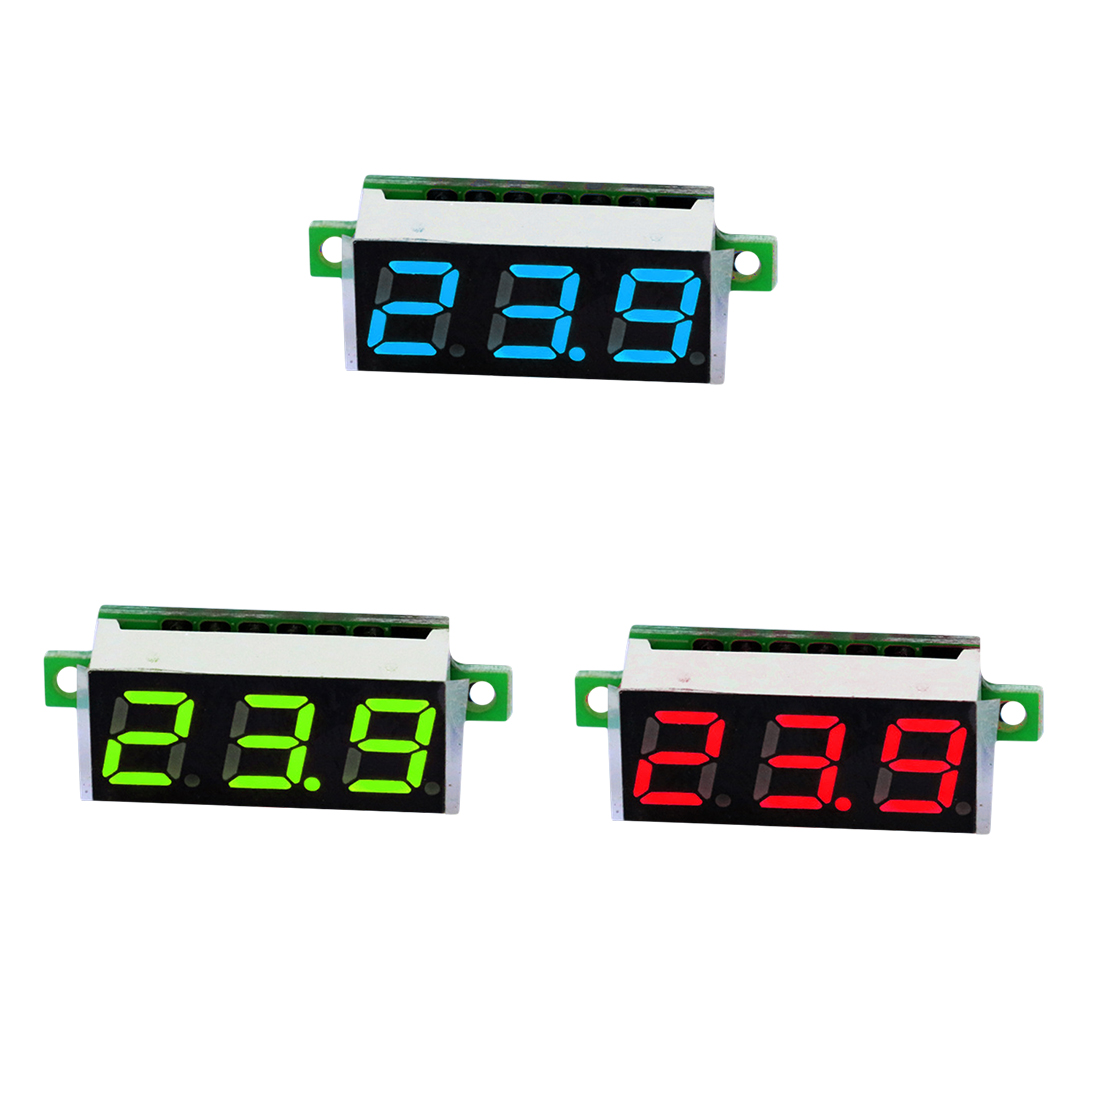 0.28 Inch 2.5V-30V Mini Digital Voltmeter Voltage Tester Meter LED Screen Electronic Parts Accessories Digital Voltmeter mini voltmeter tester digital voltage test battery dc 0 30v red blue green auto car